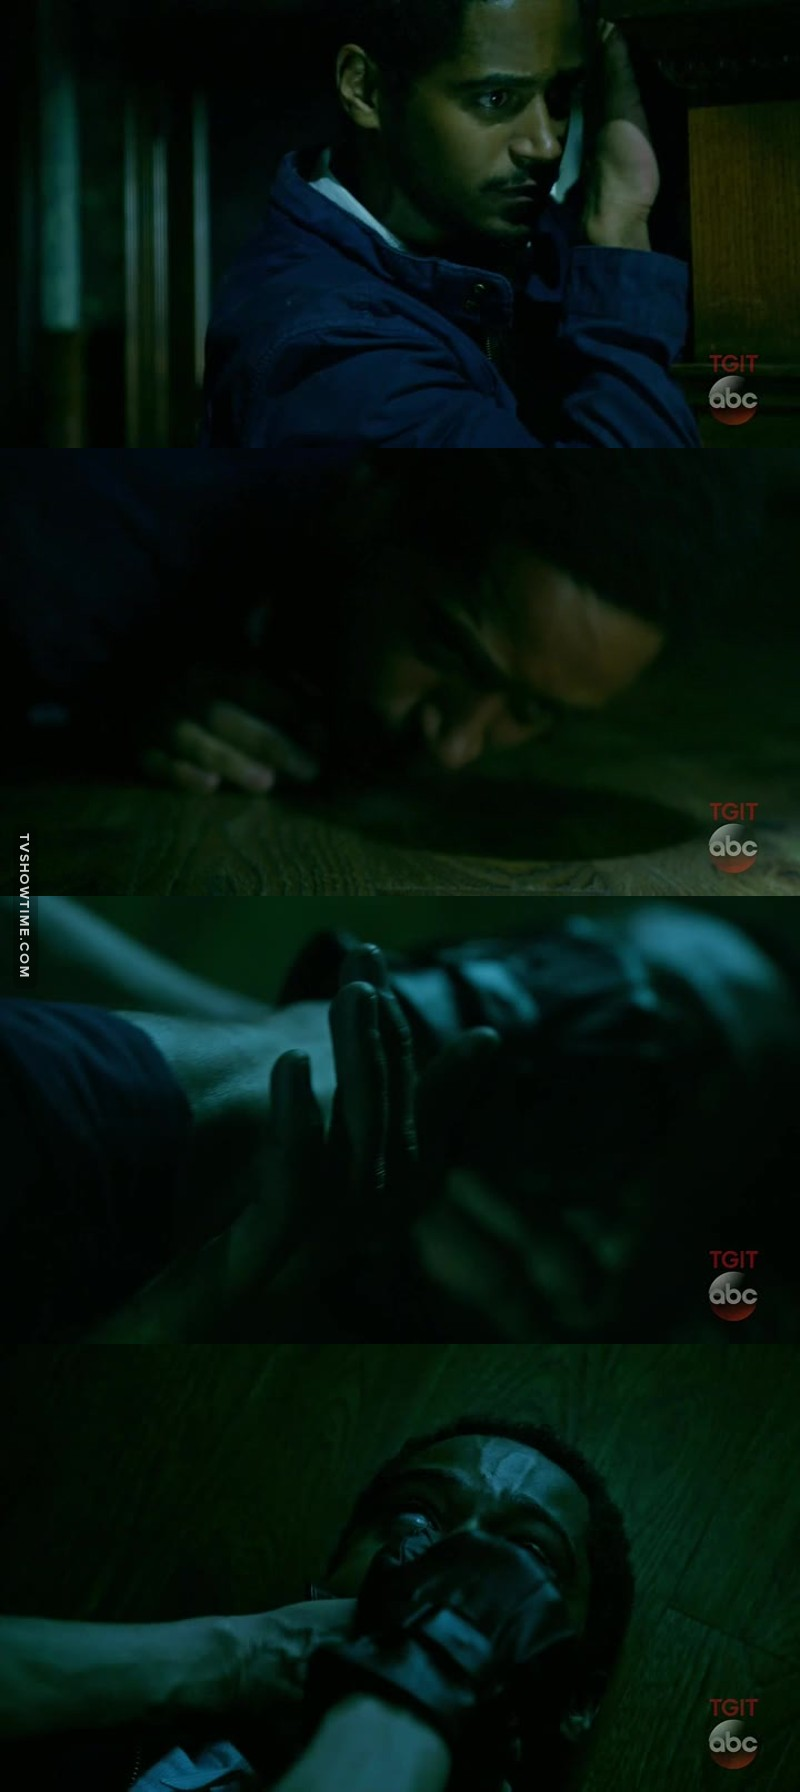 One of the most heartbreaking scenes of the entire show, my God.